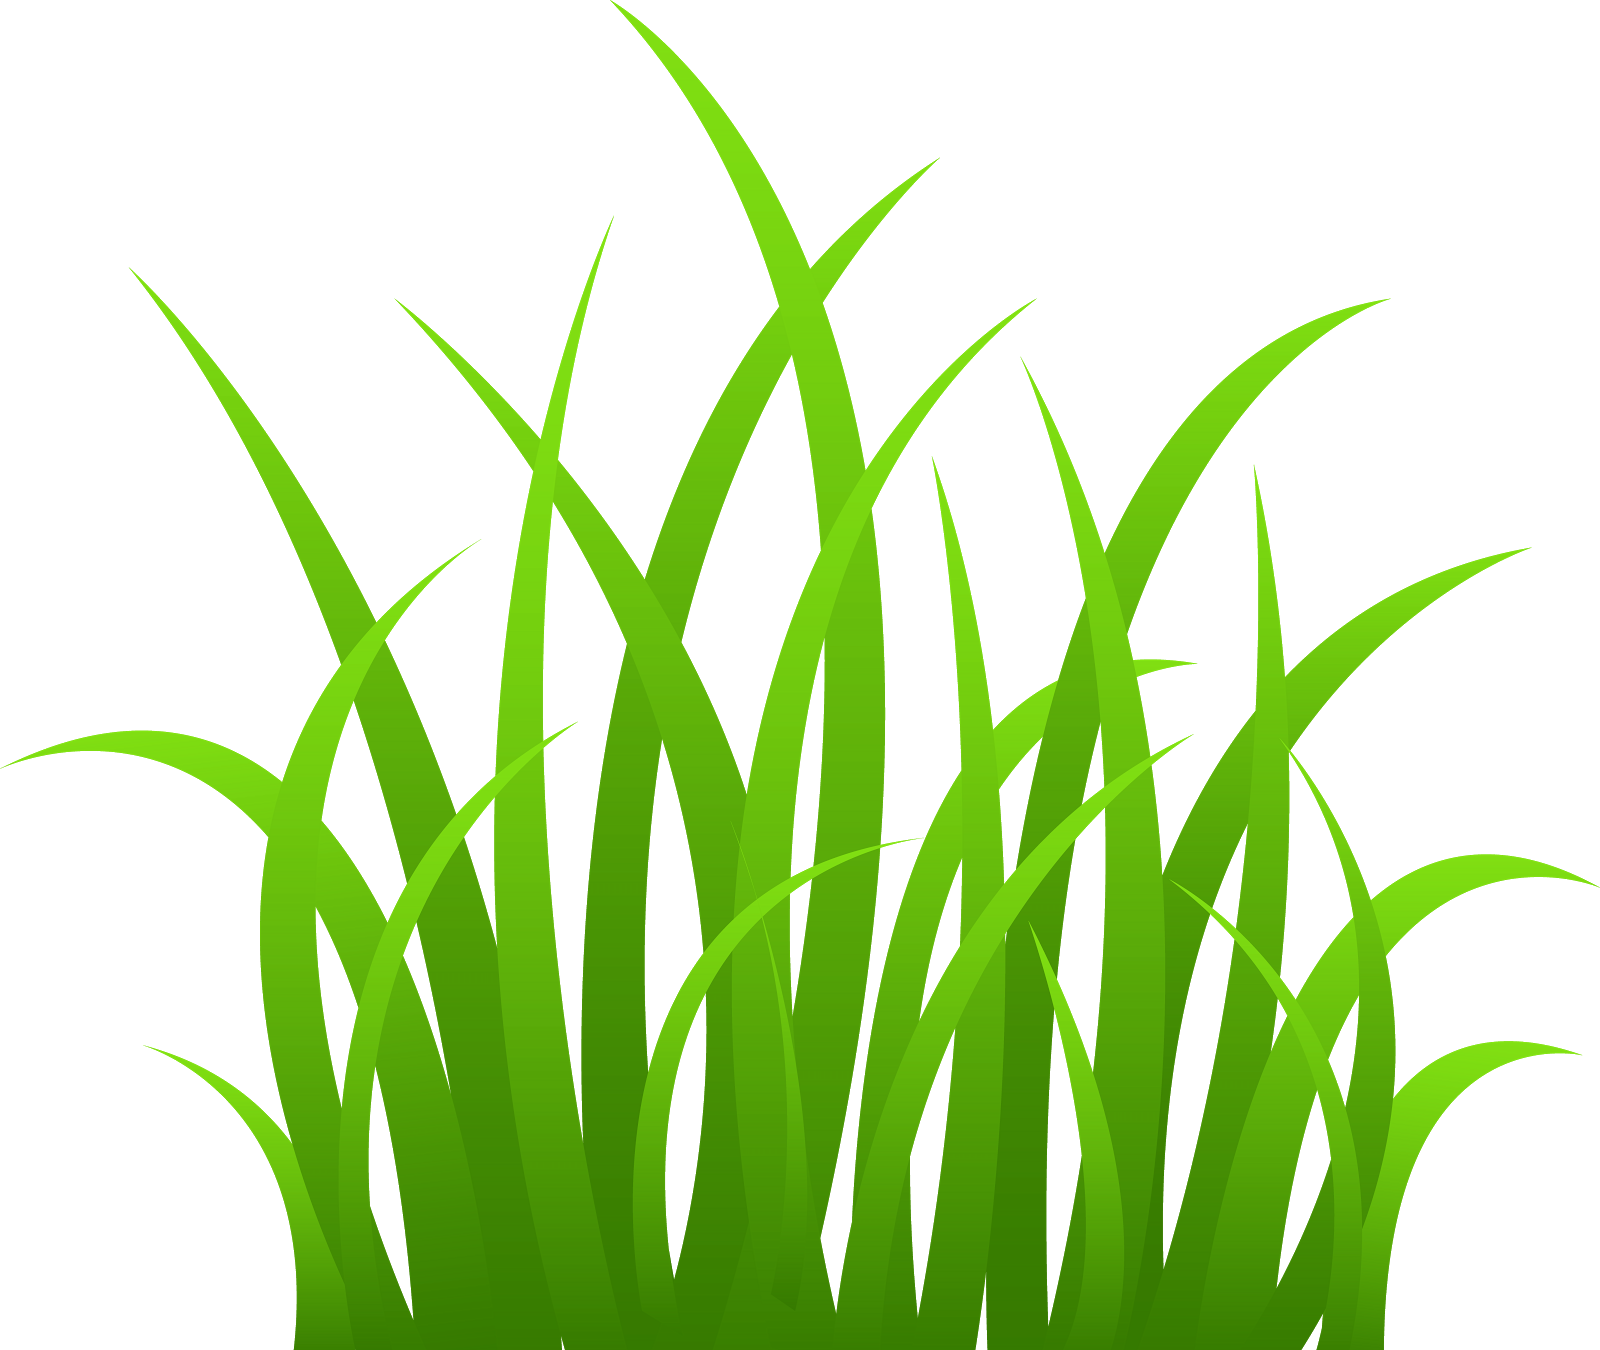 wetland drawing grass